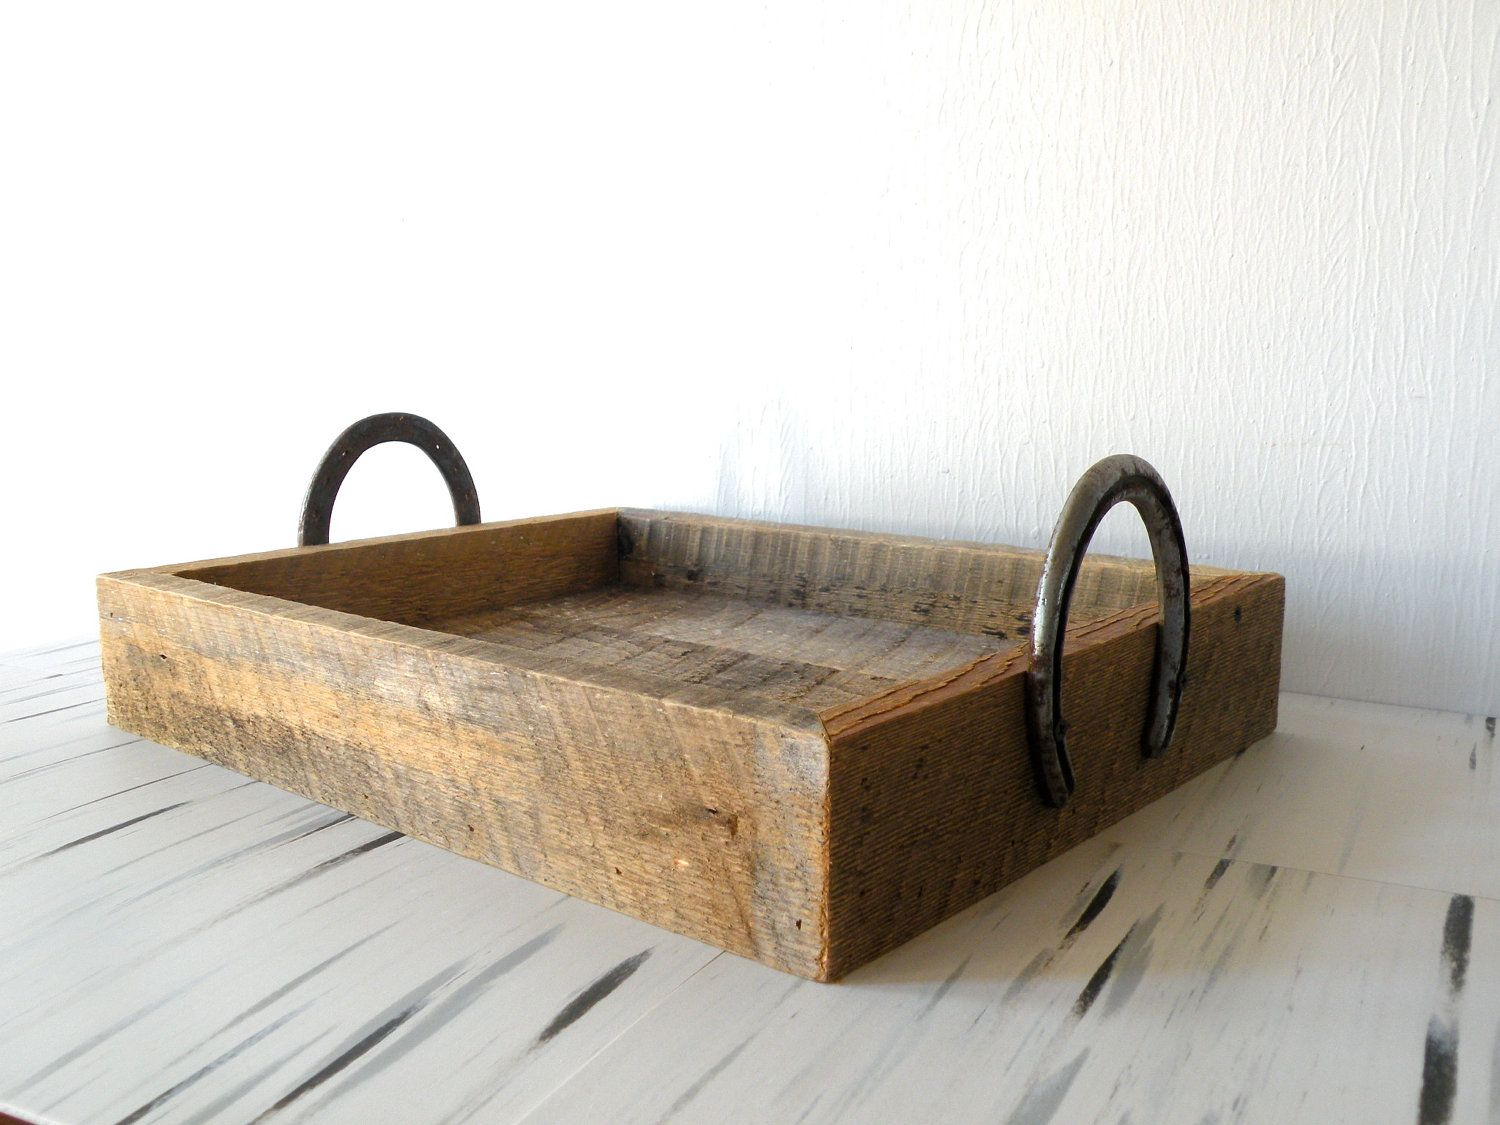 Reclaimed Barn Wood Serving Tray W/ Horse Shoe Handles. $50.00 ...